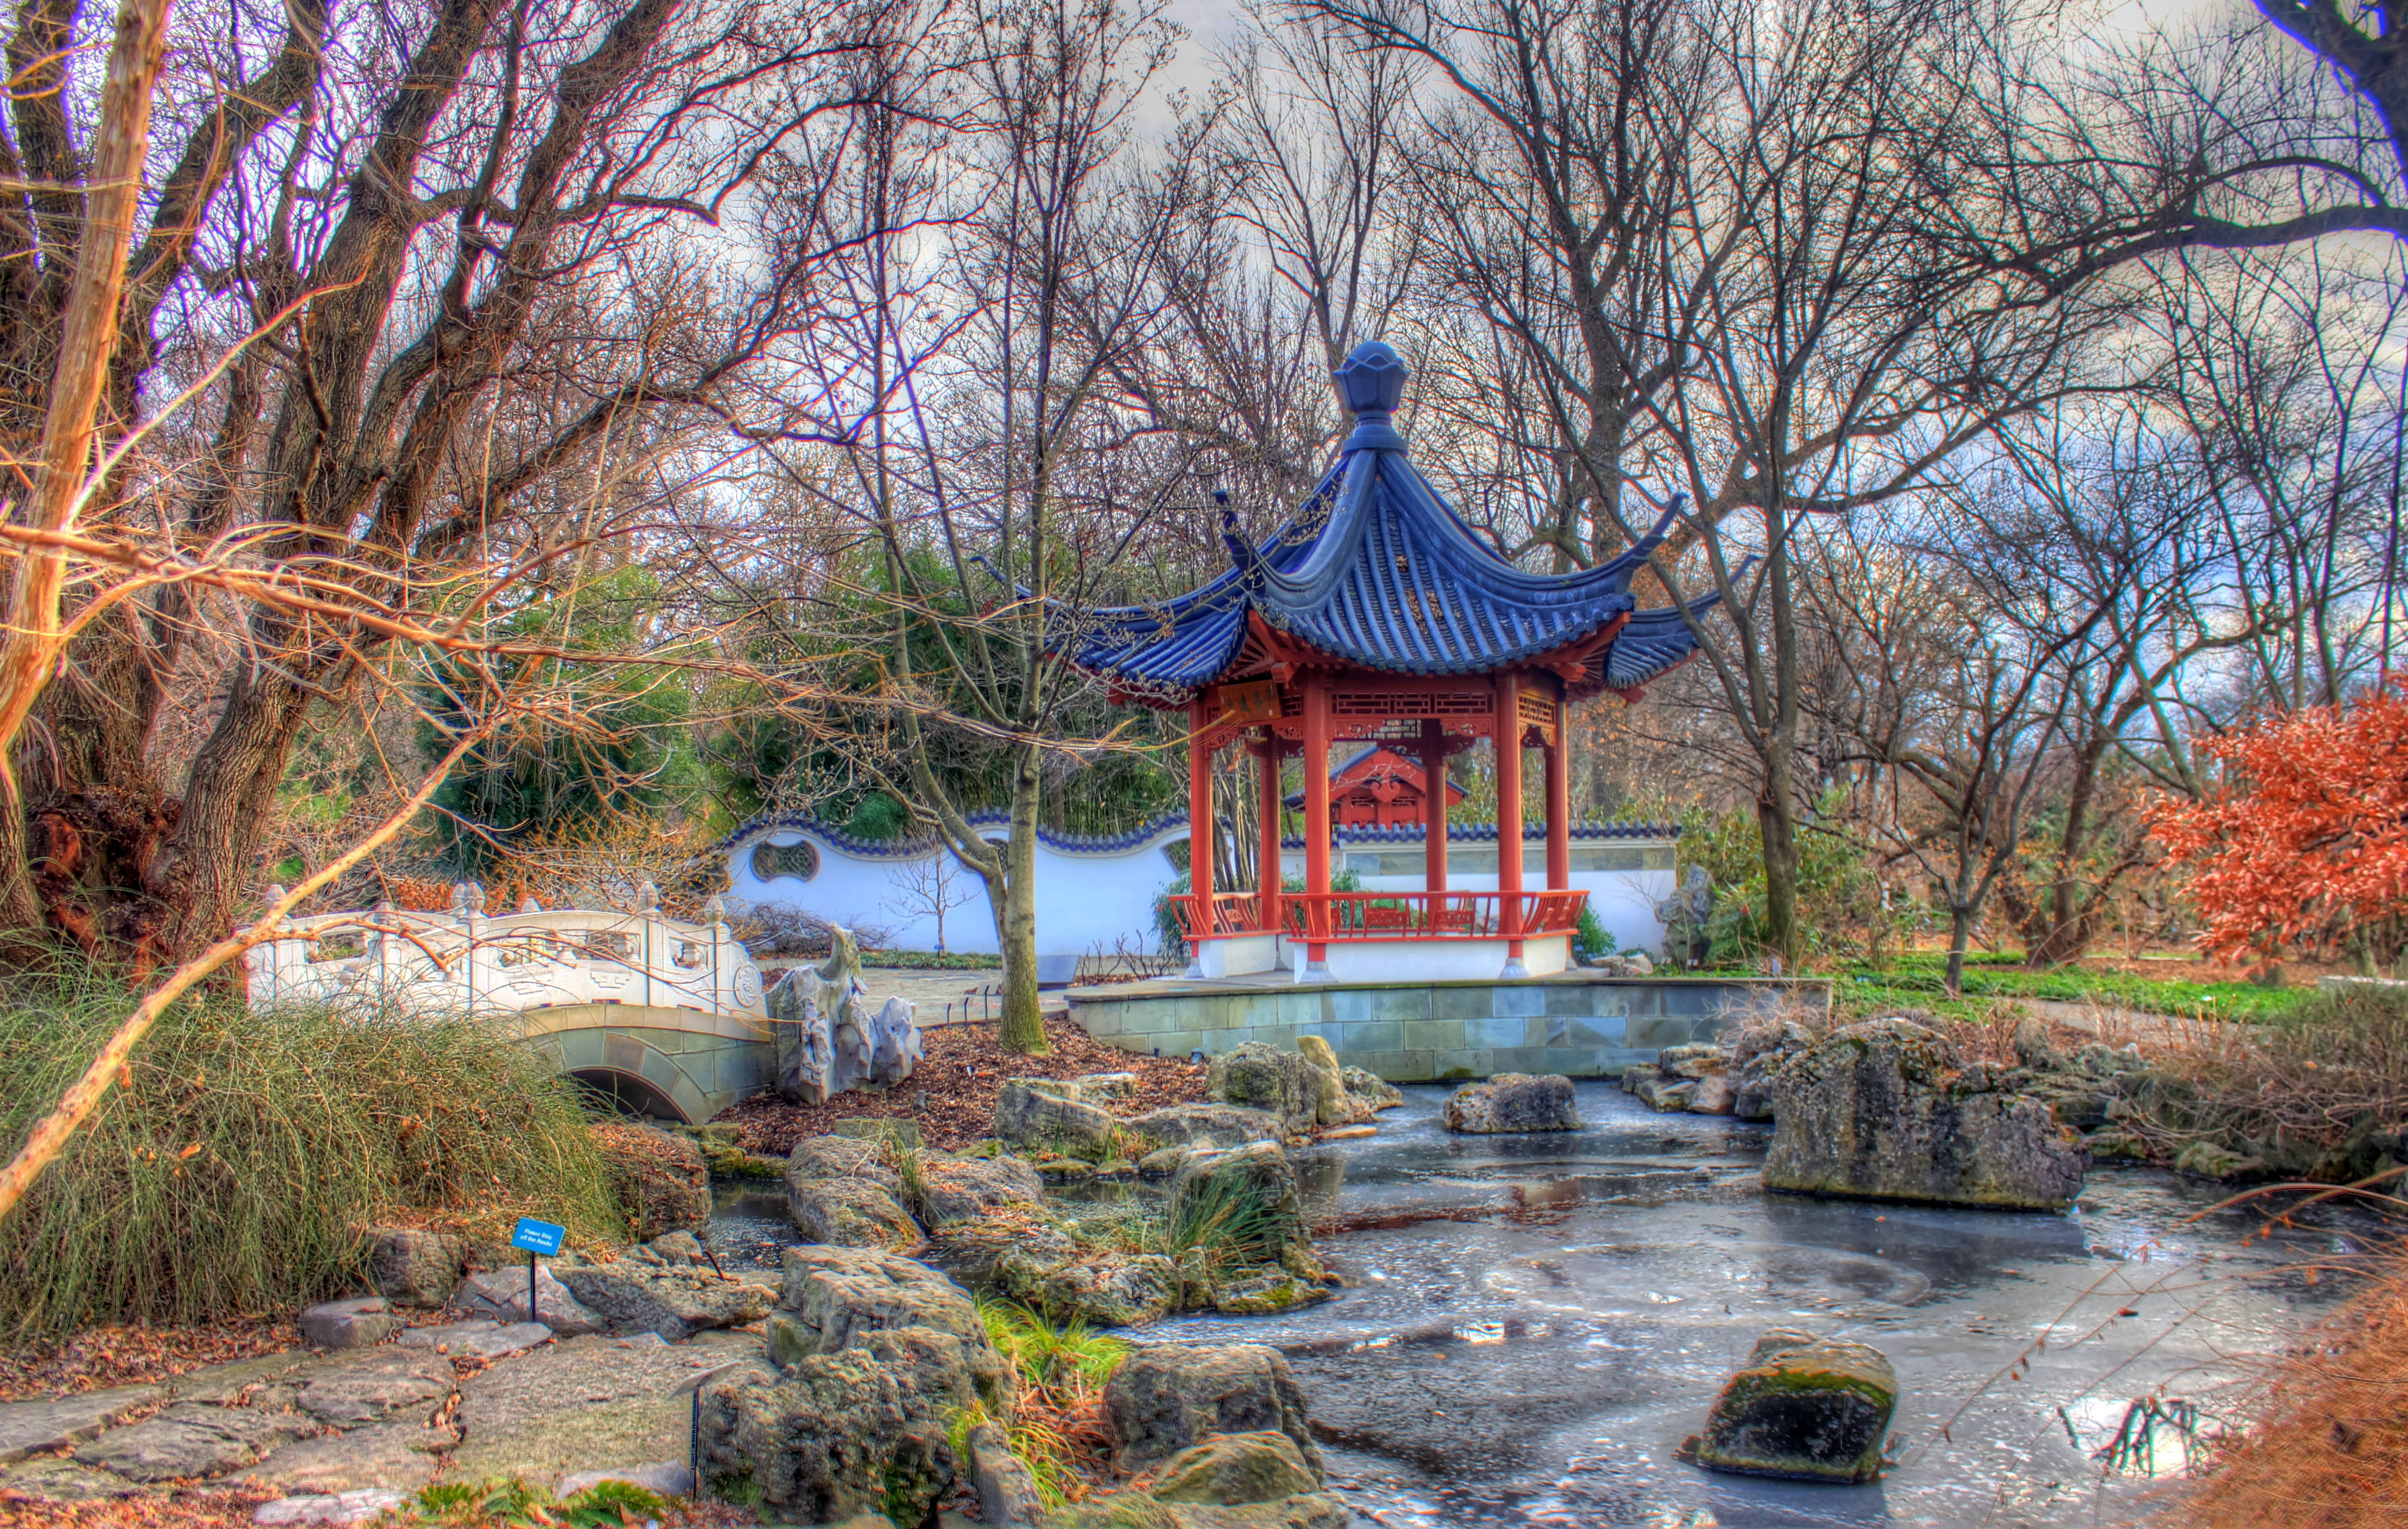 Free Stock of Temple place in Chinese Gardens in St Louis